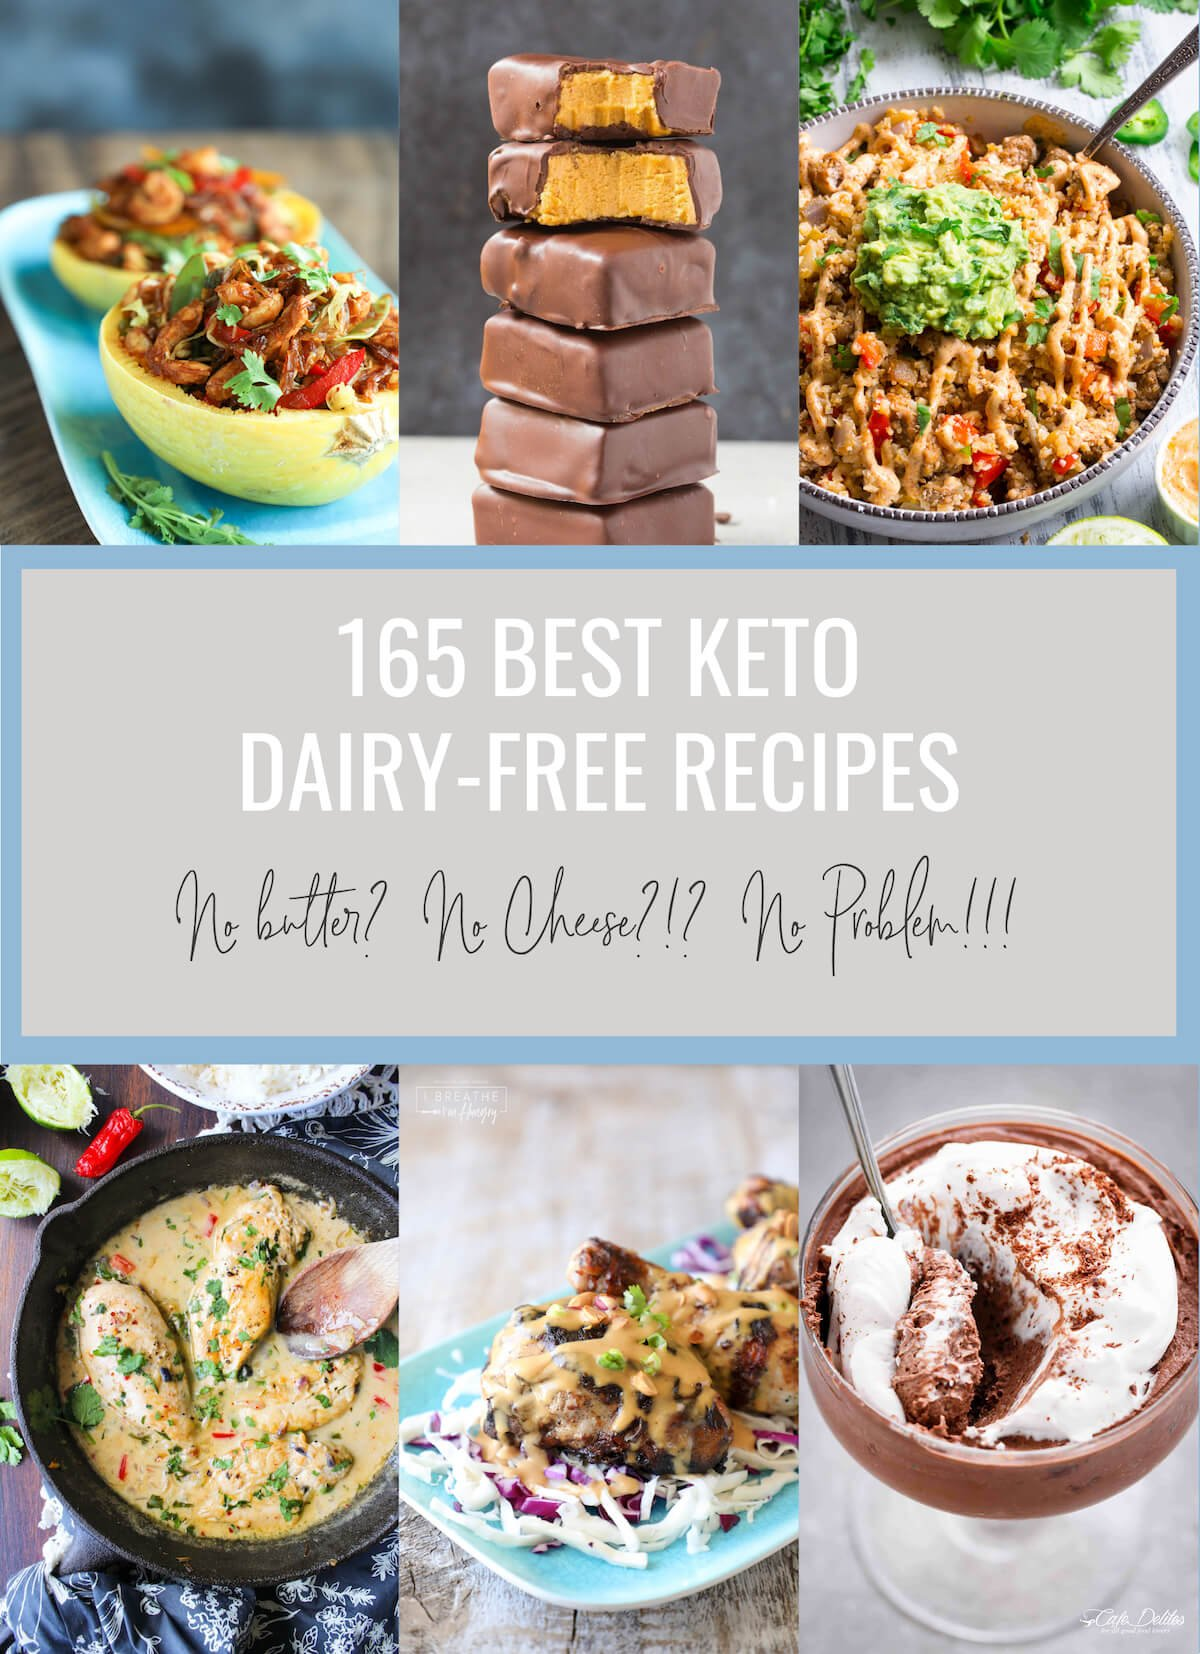 Noble Keto Dairy Free Recipes We Could Find Online Your Dairyfree Low Keto Dairy Free Recipes Low Carb I Brea Hungry Dairy Free Meals On A Budget Dairy Free Meals Delivered nice food Dairy Free Meals